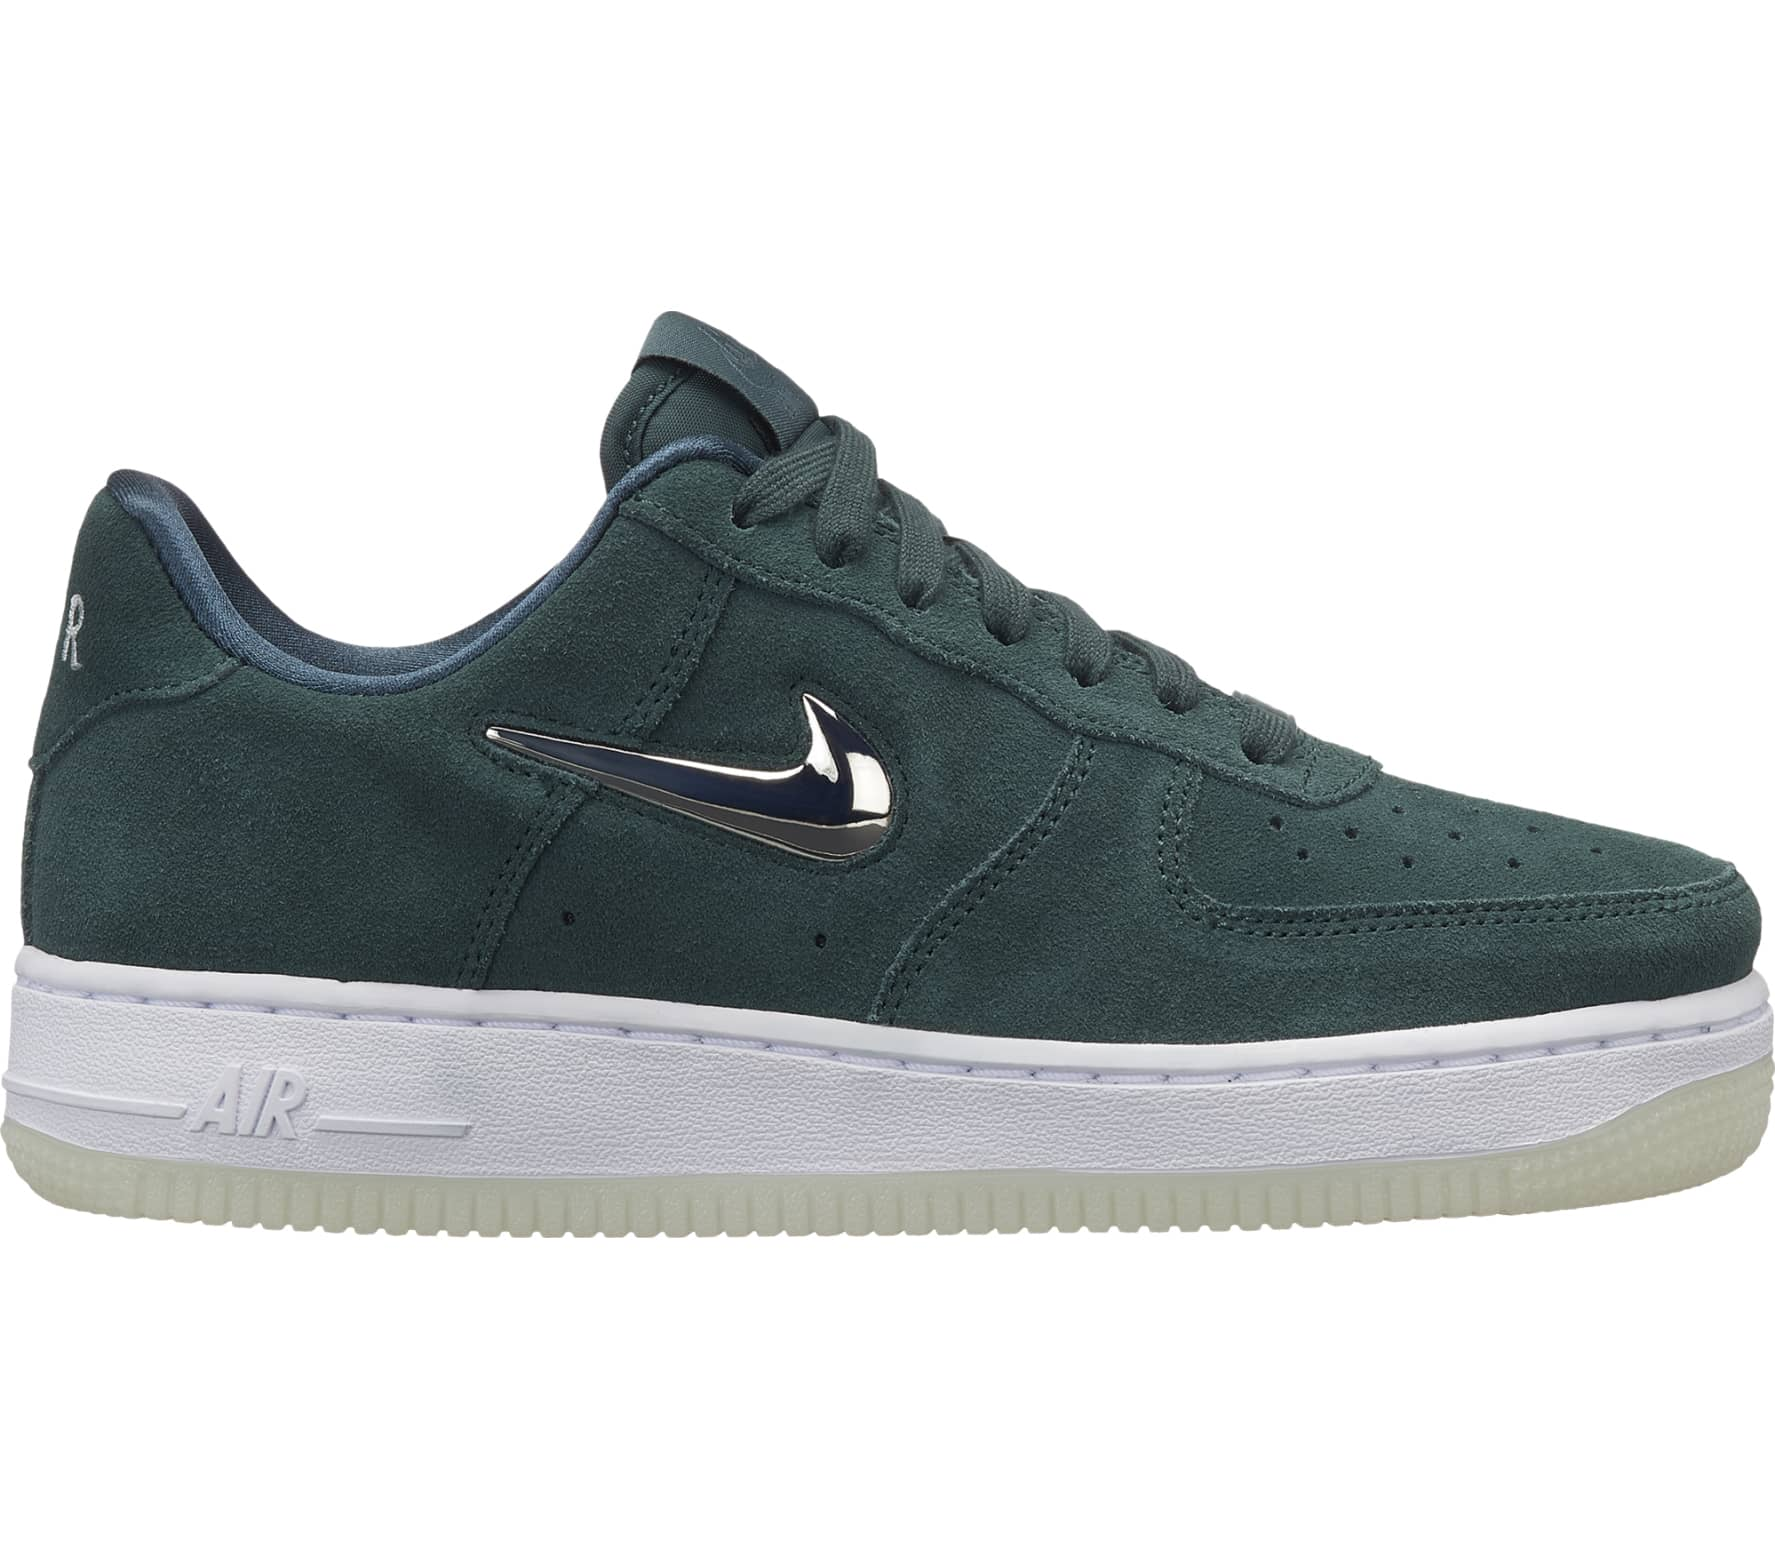 nike sportswear air force 1 '07 premium dames sneakers (groen)